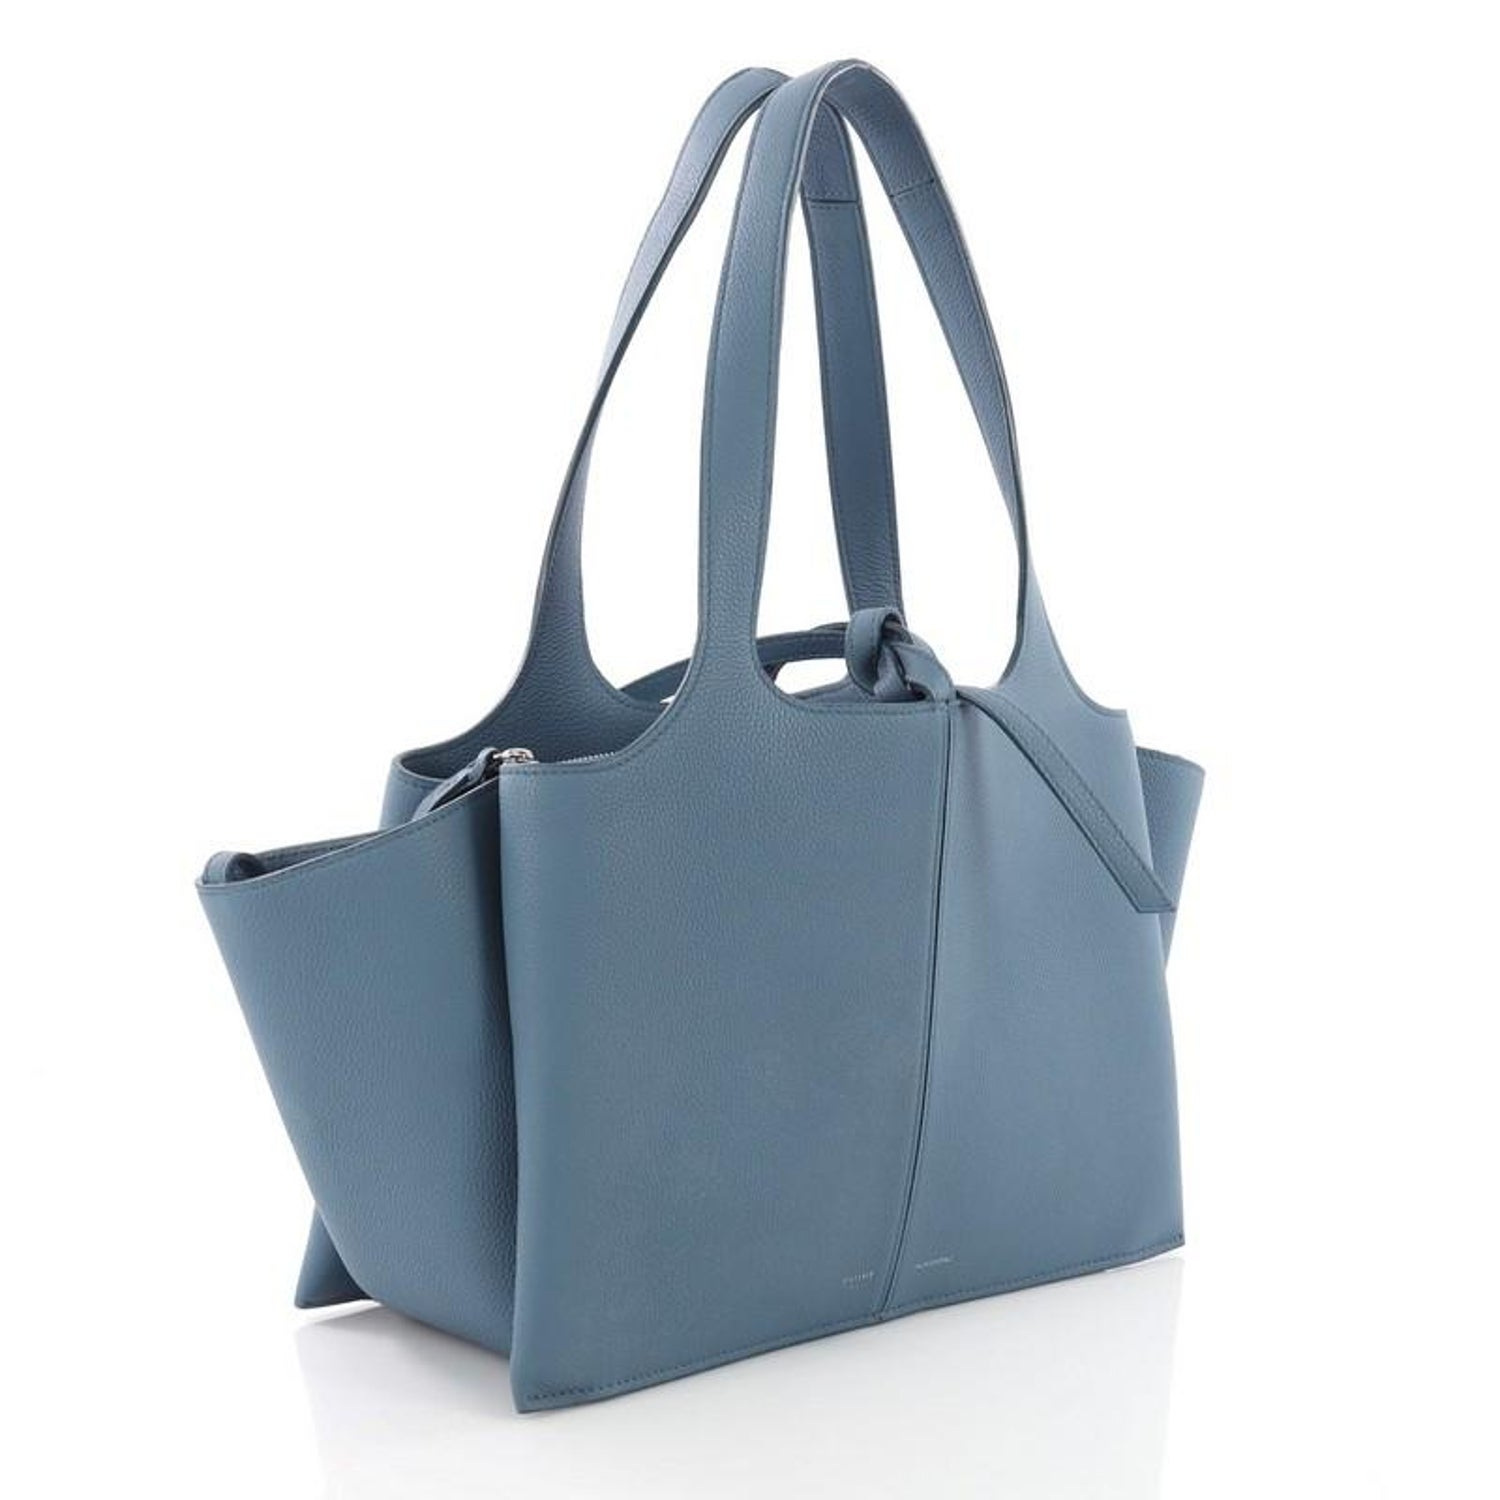 Celine Tri-Fold Shoulder Bag Grained Calfskin Small For Sale at 1stdibs cfb0575214d7c